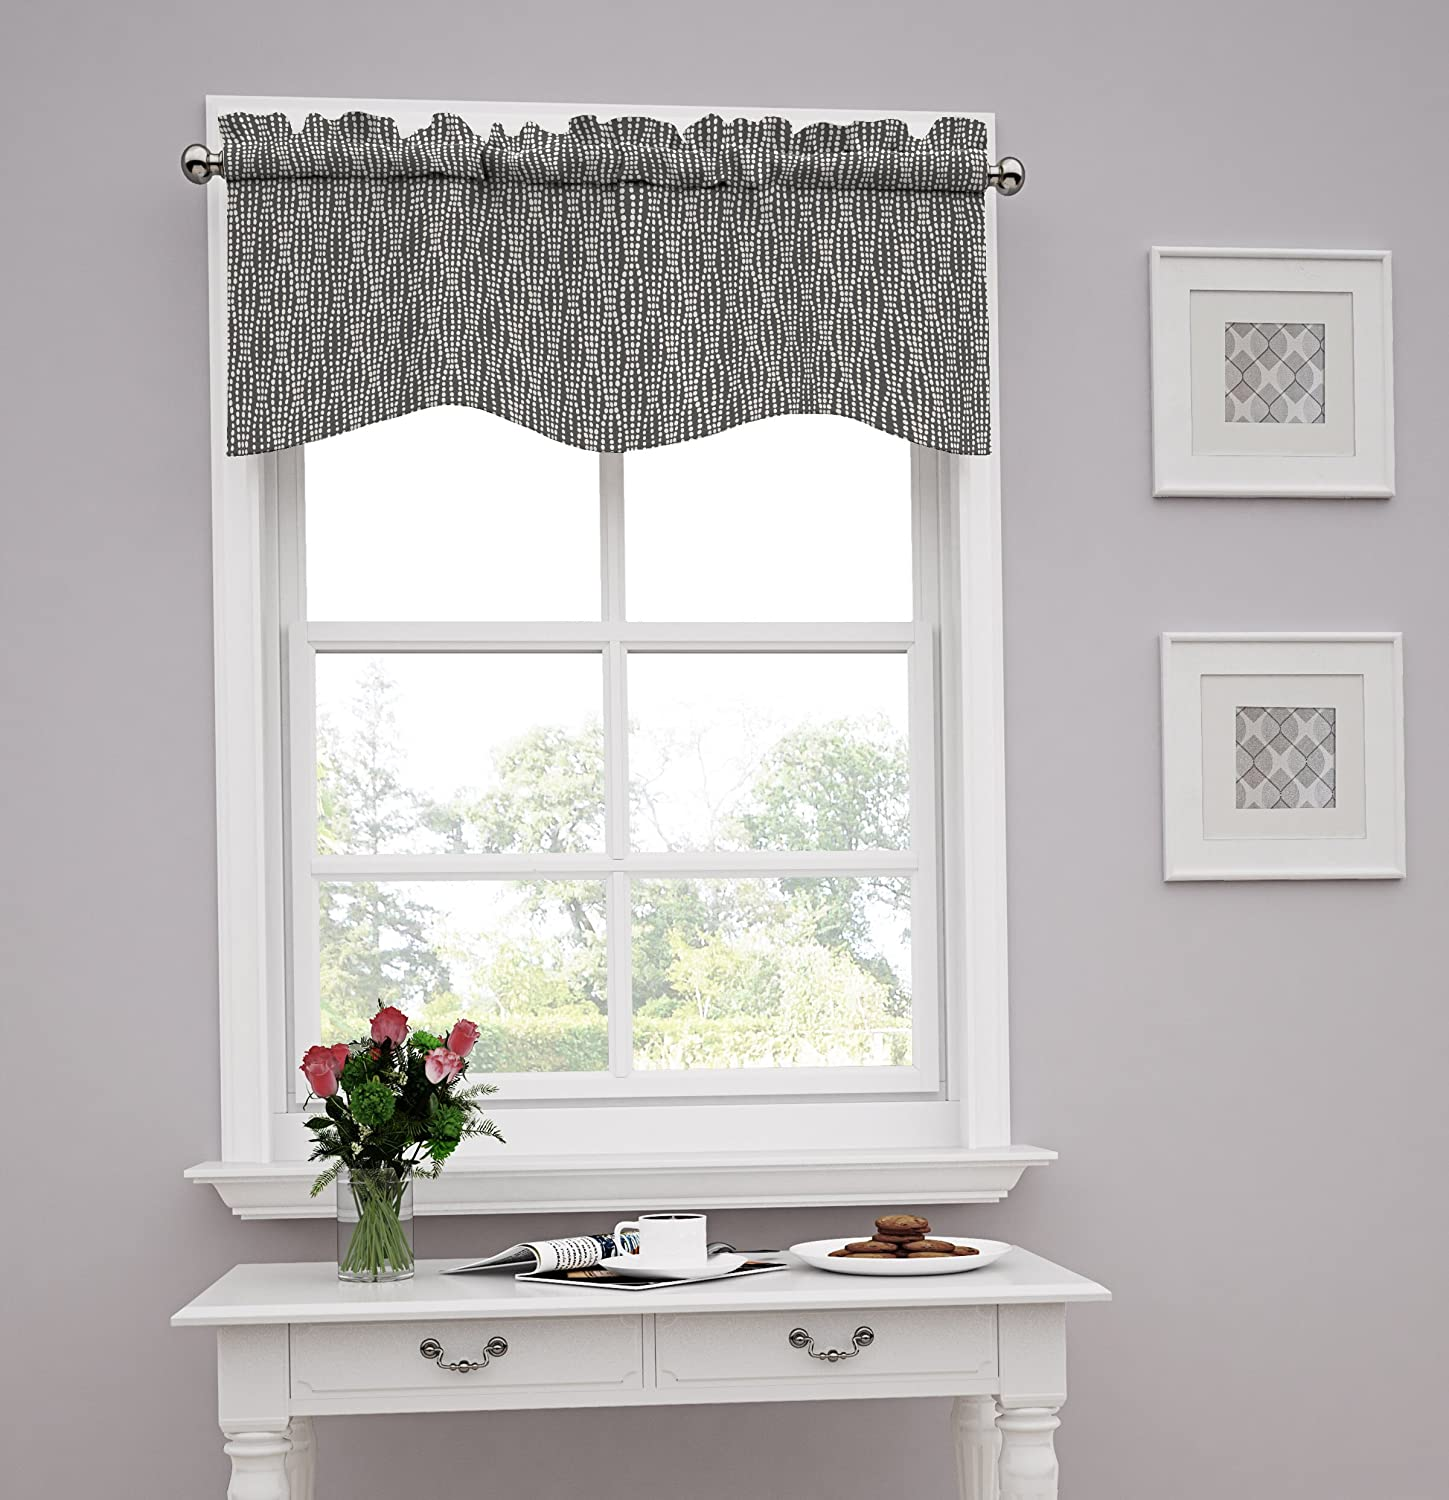 Traditions by Waverly Strands Window Valance, Charcoal Ellery Homestyles 14977052016CHR